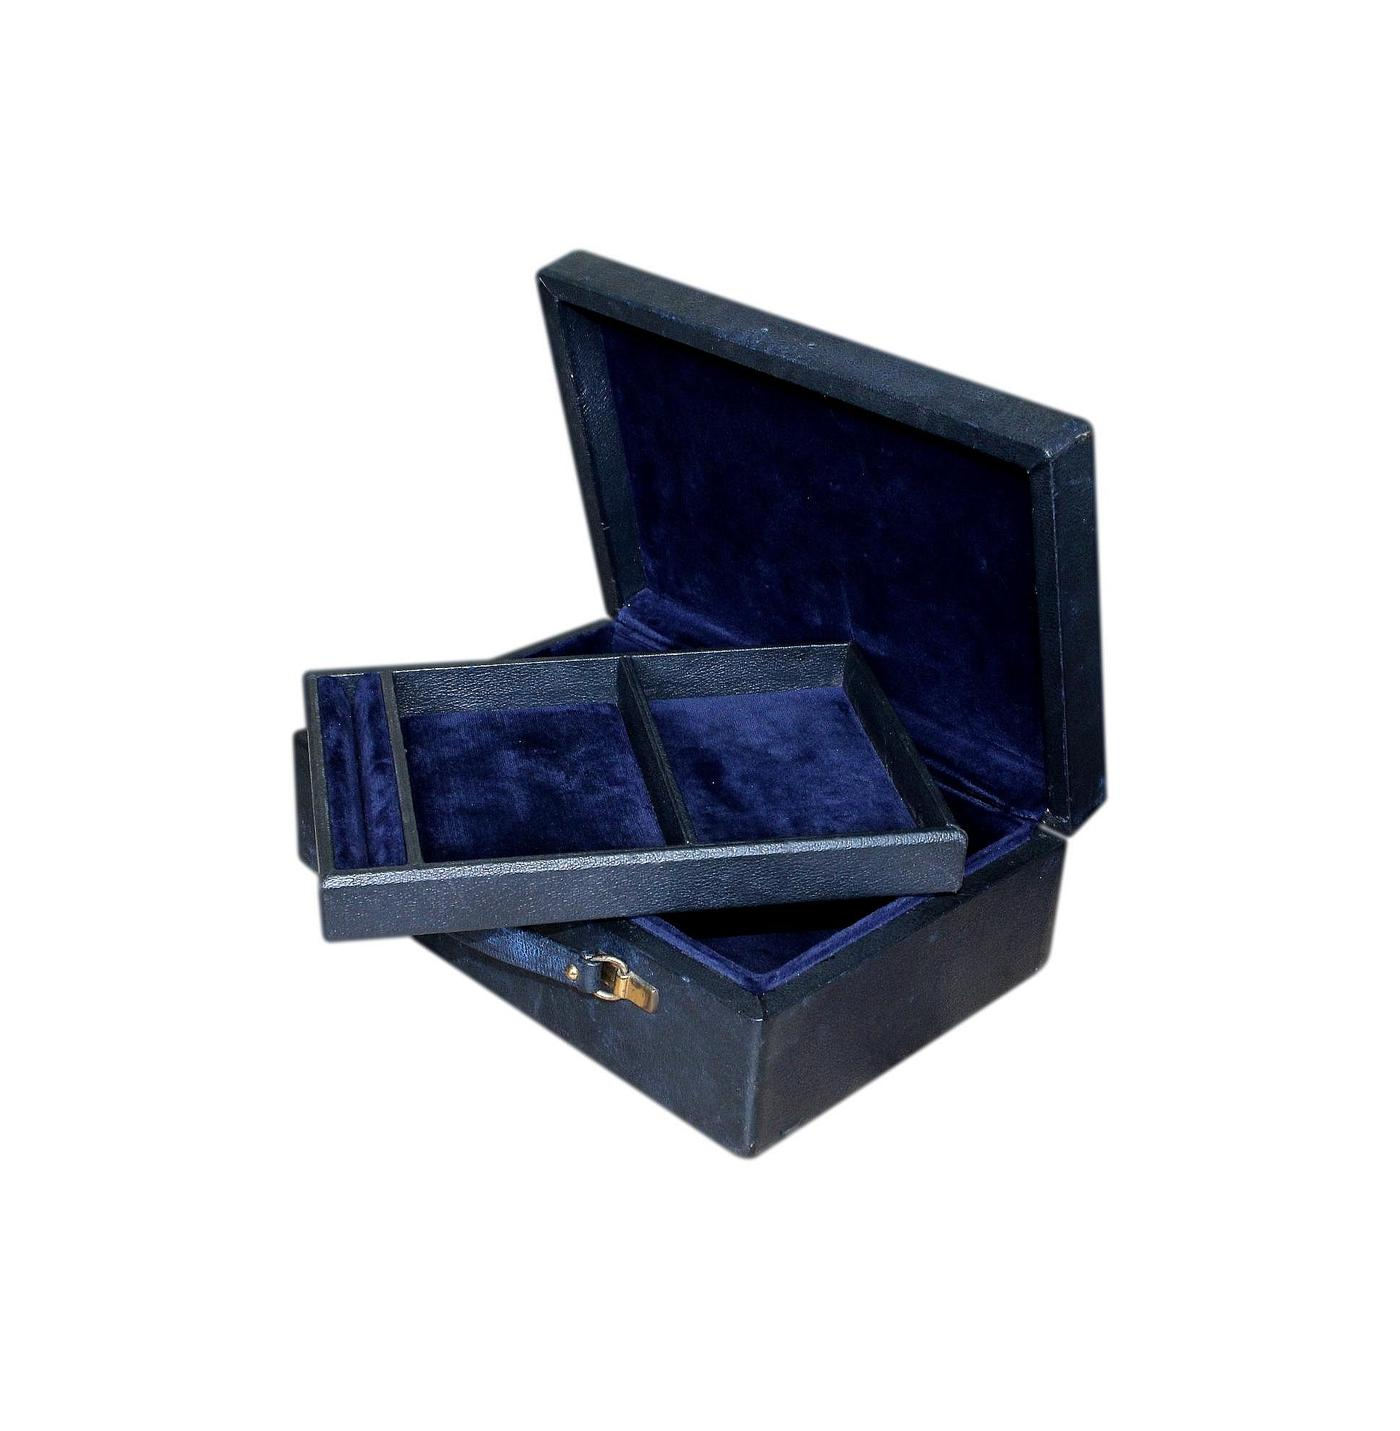 1980s Vintage Navy Blue Leather Jewellery Box